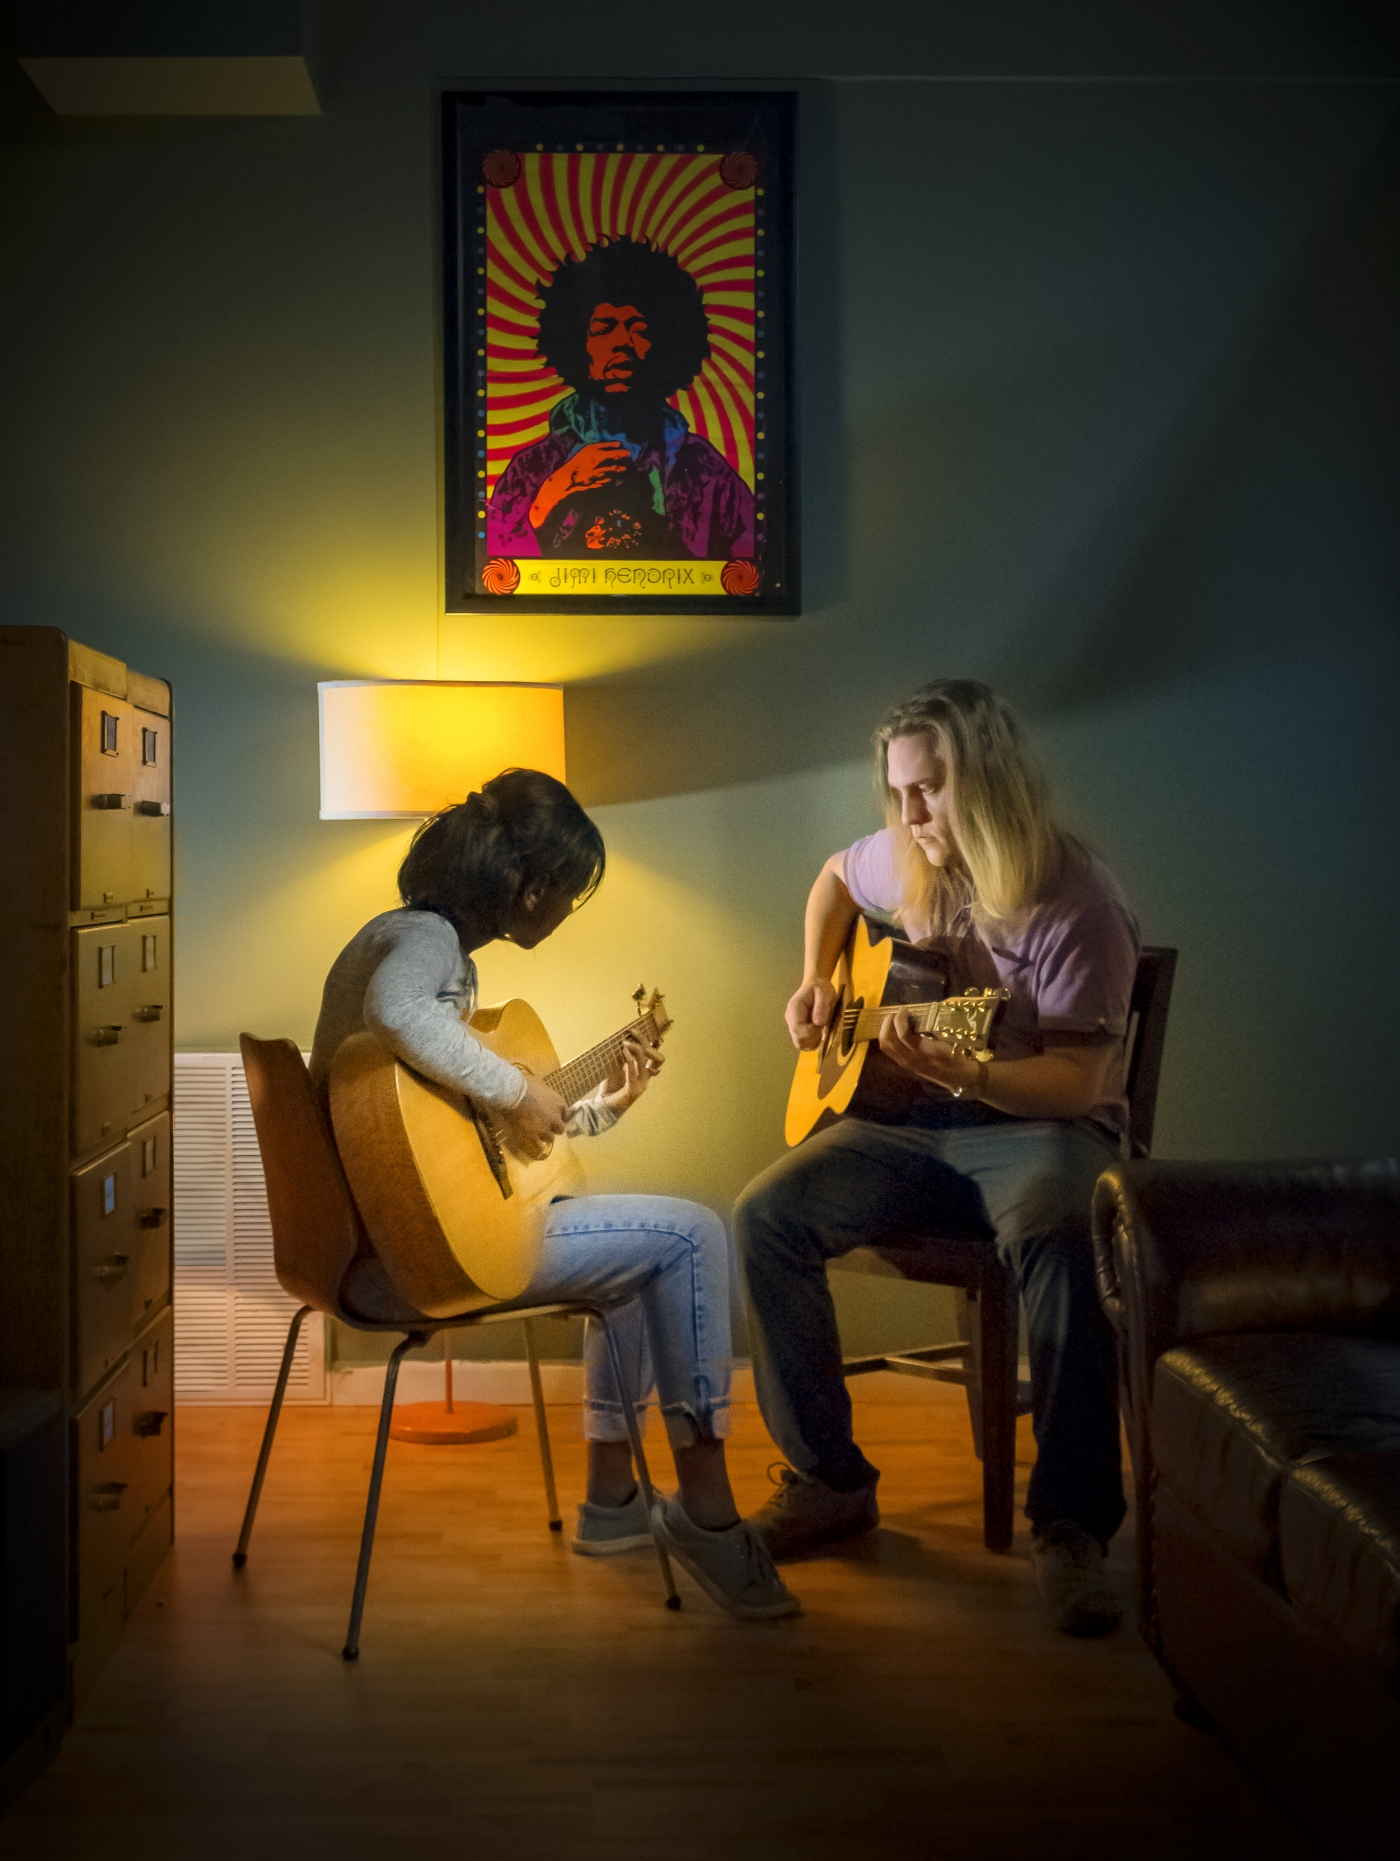 Lessons are the bread and butter for those who hope to make a career in music. (Photograph by Steve Marsel)